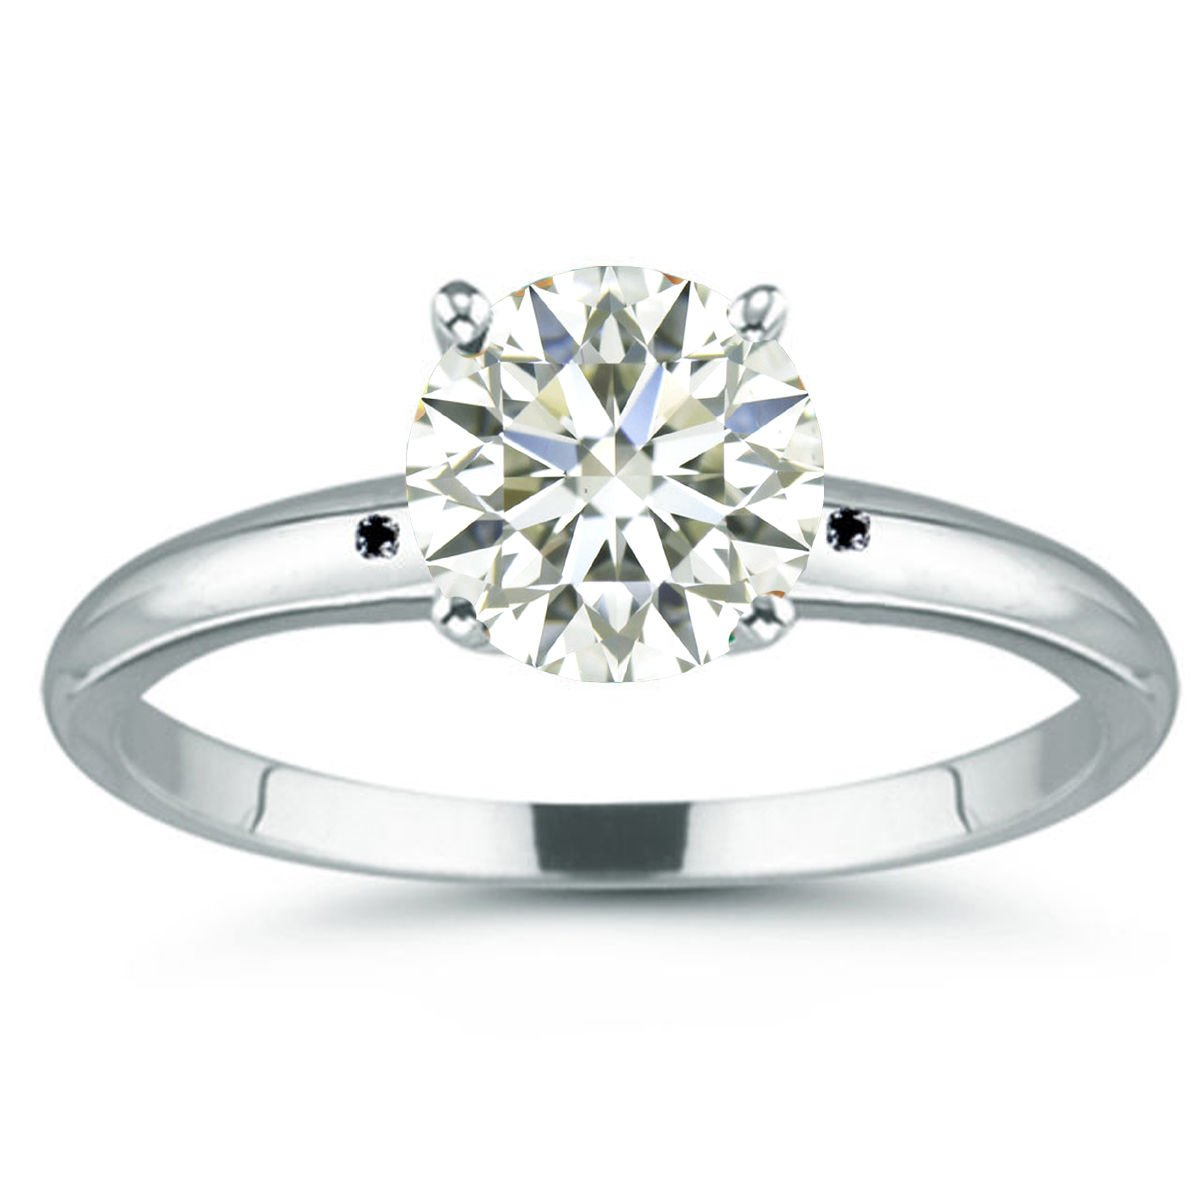 RINGJEWEL 2.90 ct SI3 Round Moissanite Solitaire Silver Plated Engagement Ring Off White Color Size 7